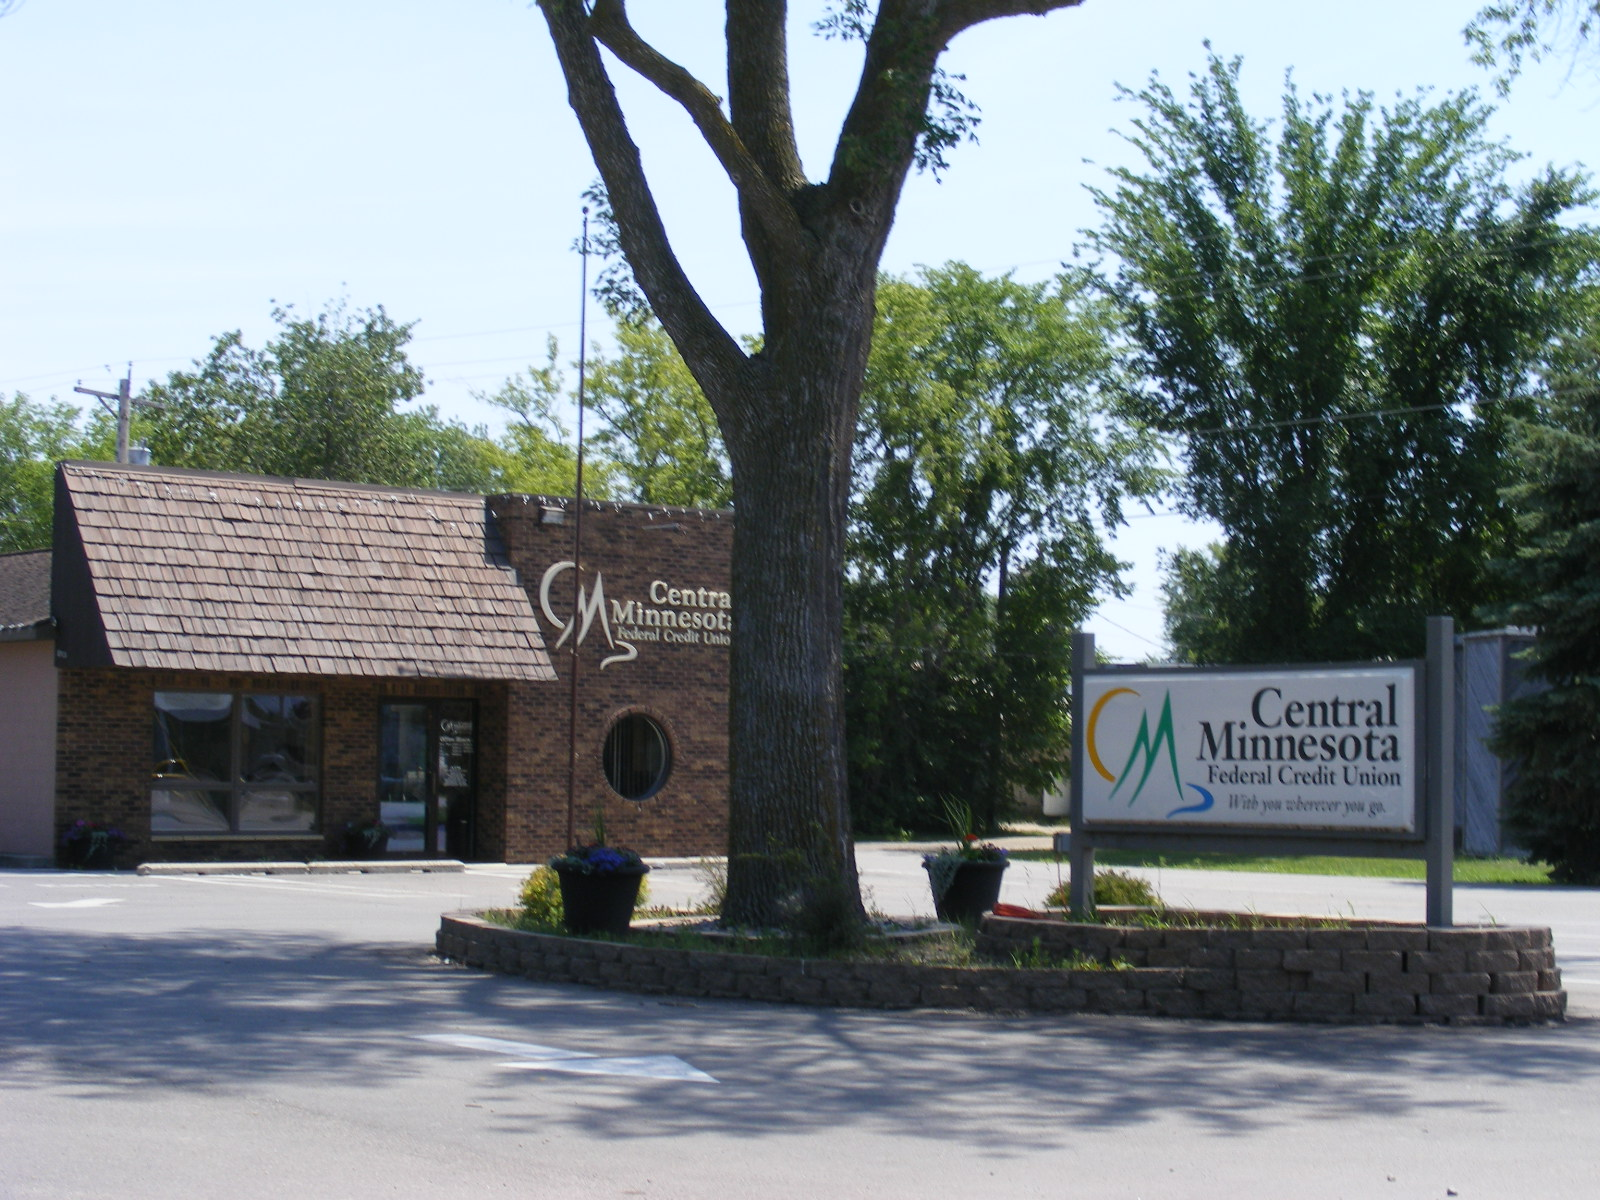 City County Federal Credit Union Mn